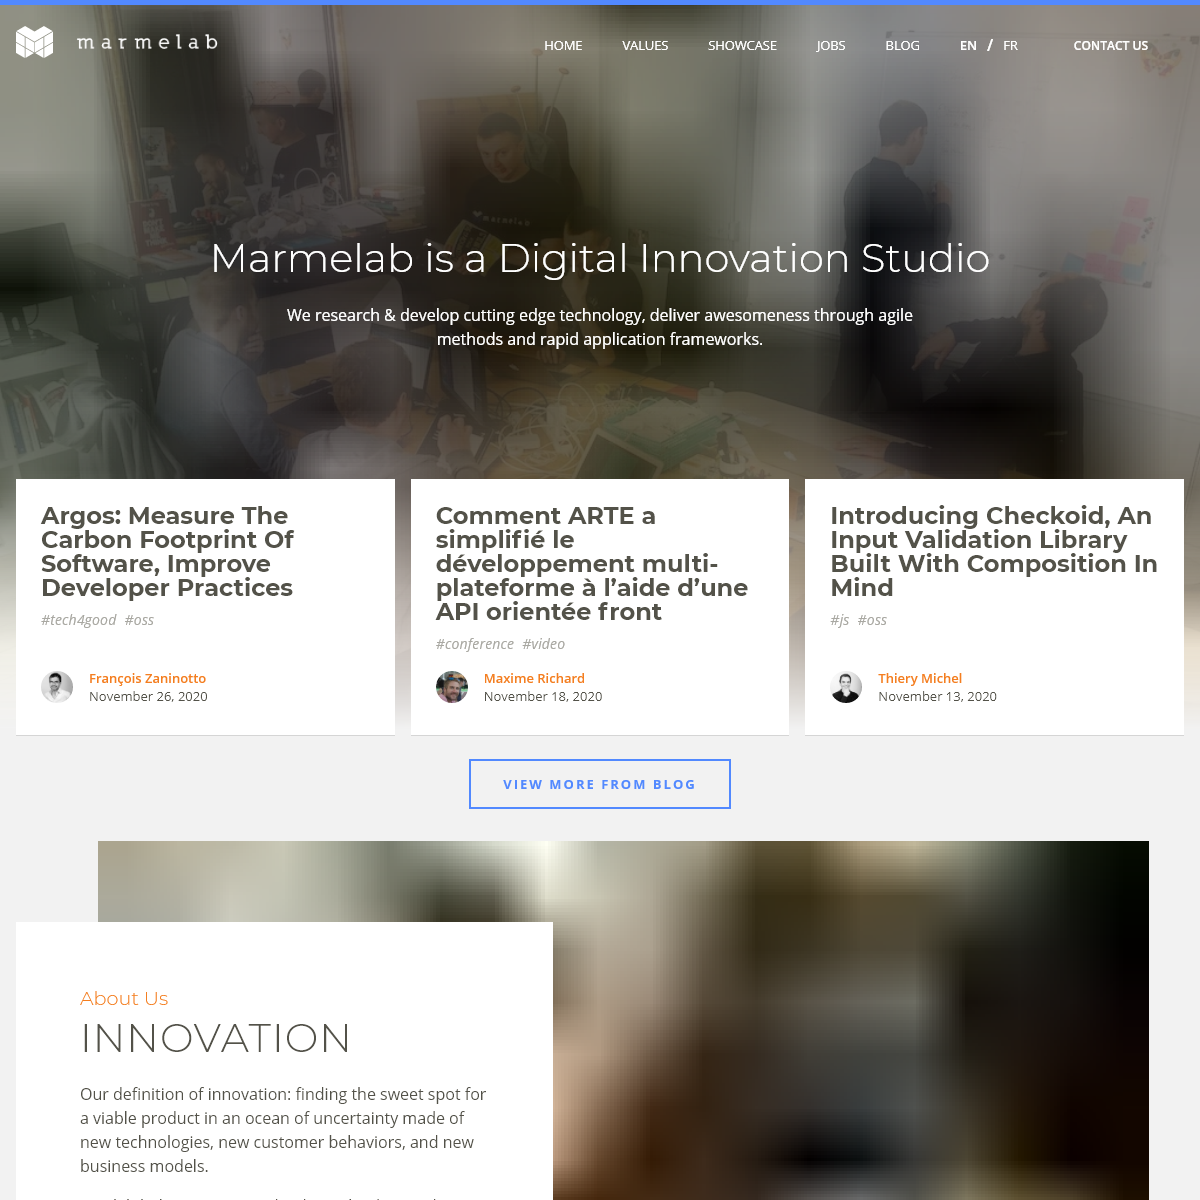 Marmelab - Digital Innovation Studio